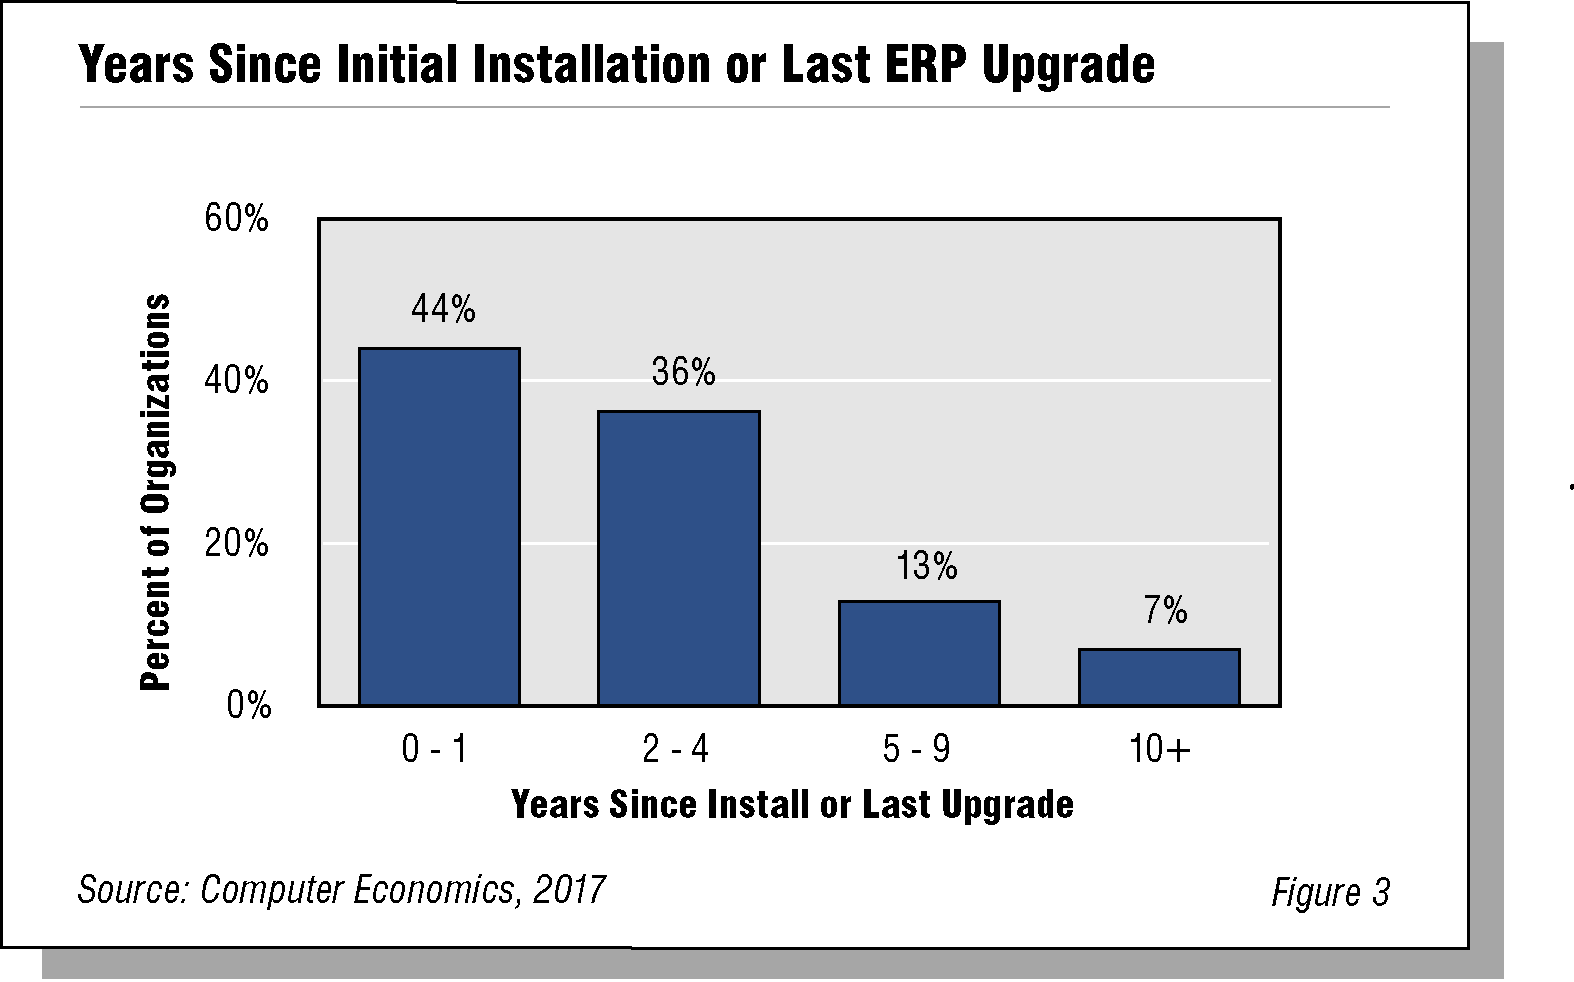 Years Since Initial Installation or Last ERP Upgrade